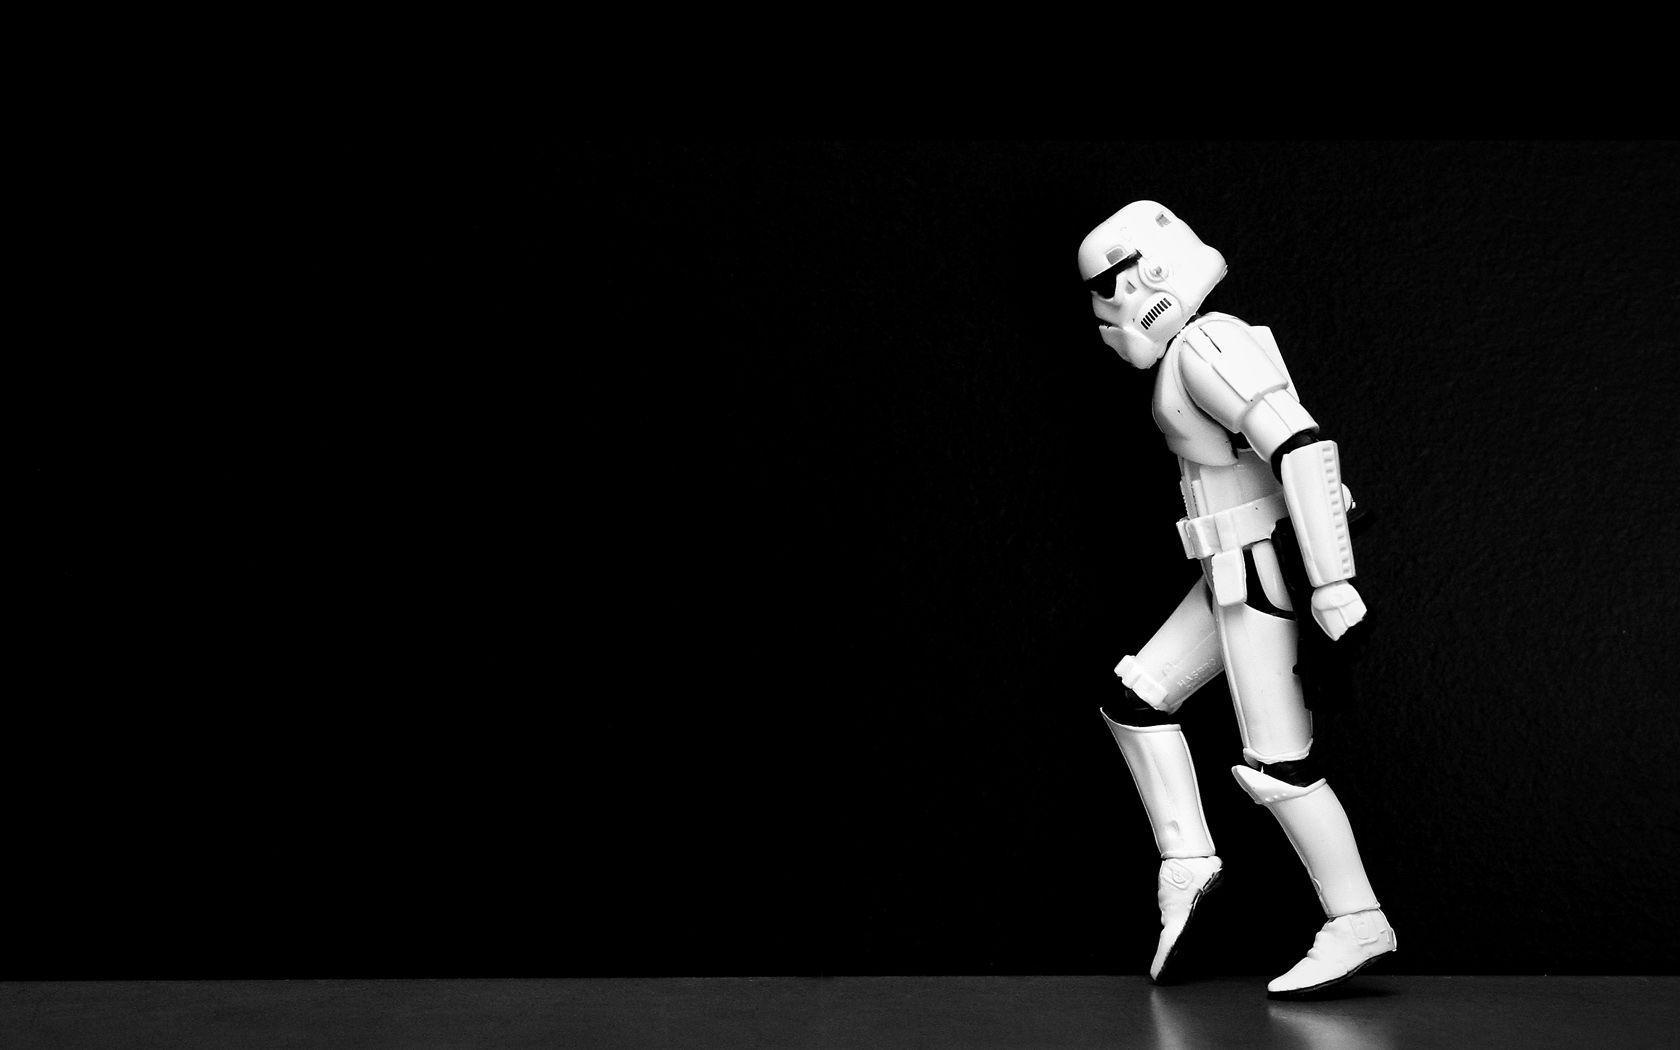 Stormtrooper Moonwalk Wallpaper | Stormtroopers | Pinterest ...